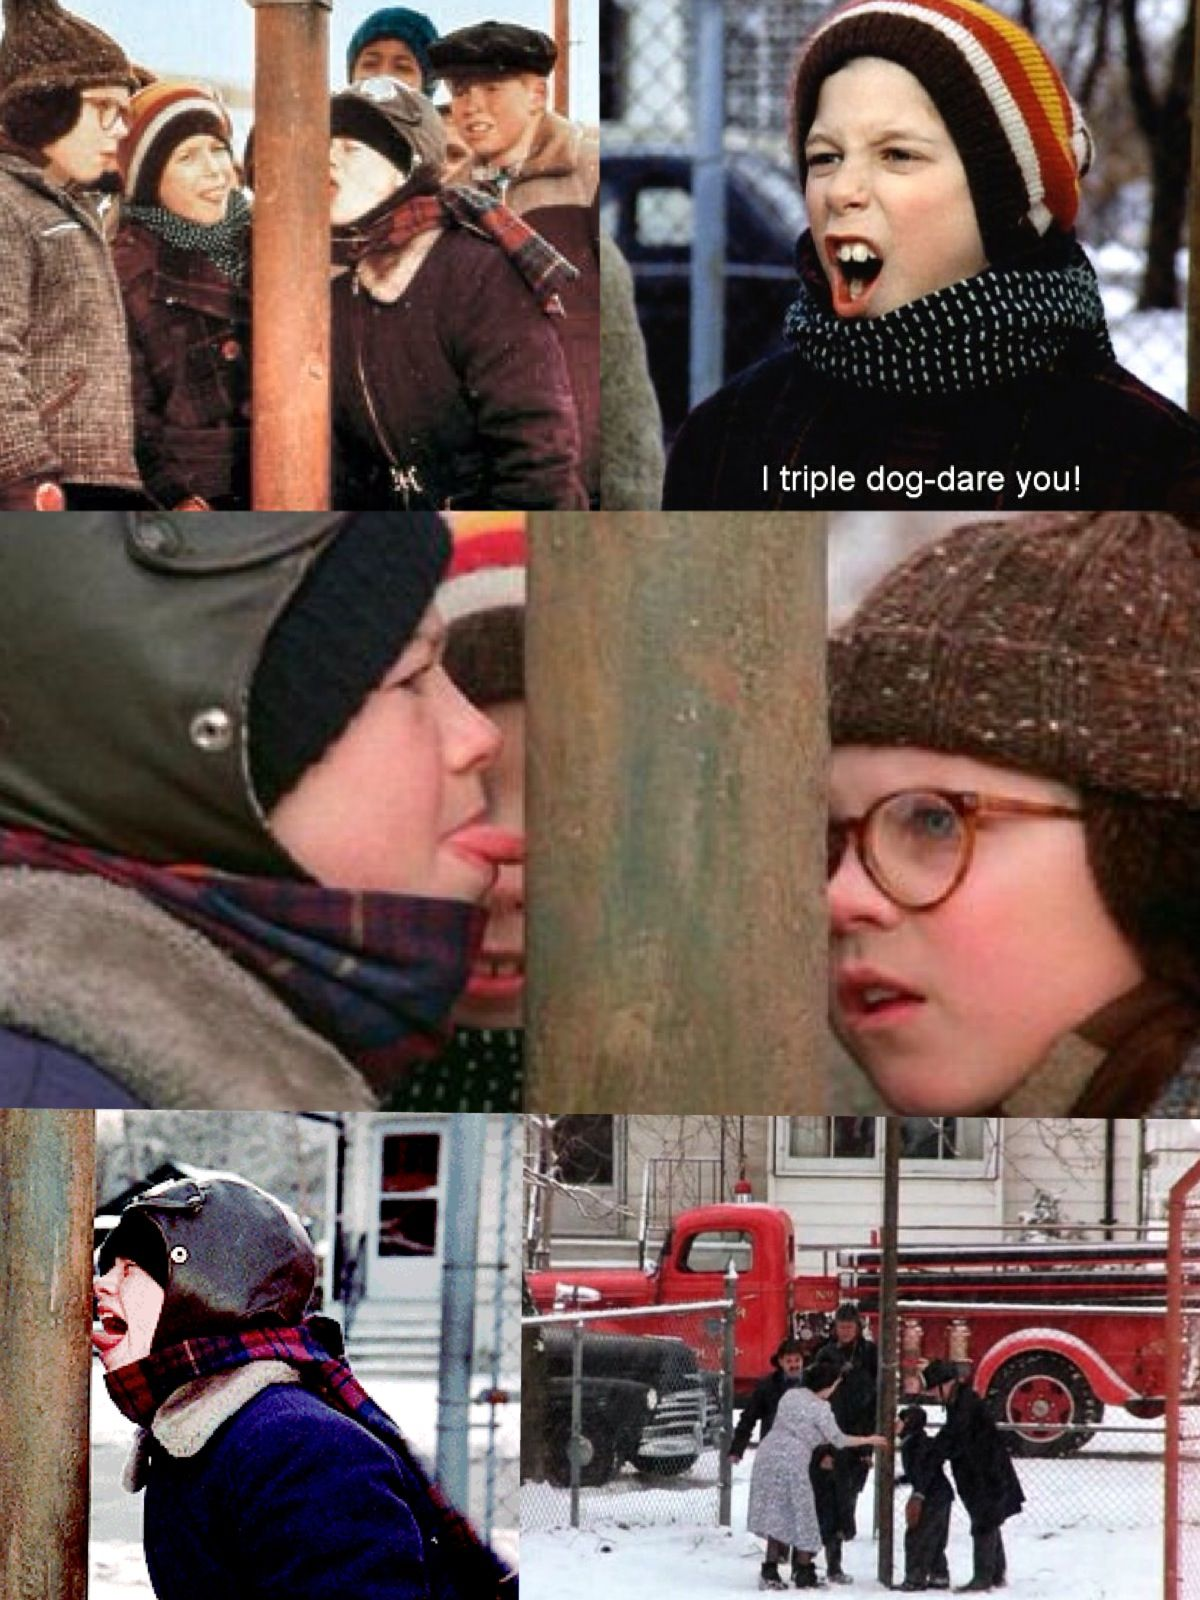 42ed7873a14 A Christmas Story 1983 - Flick  Are you kidding  Stick my tongue to that